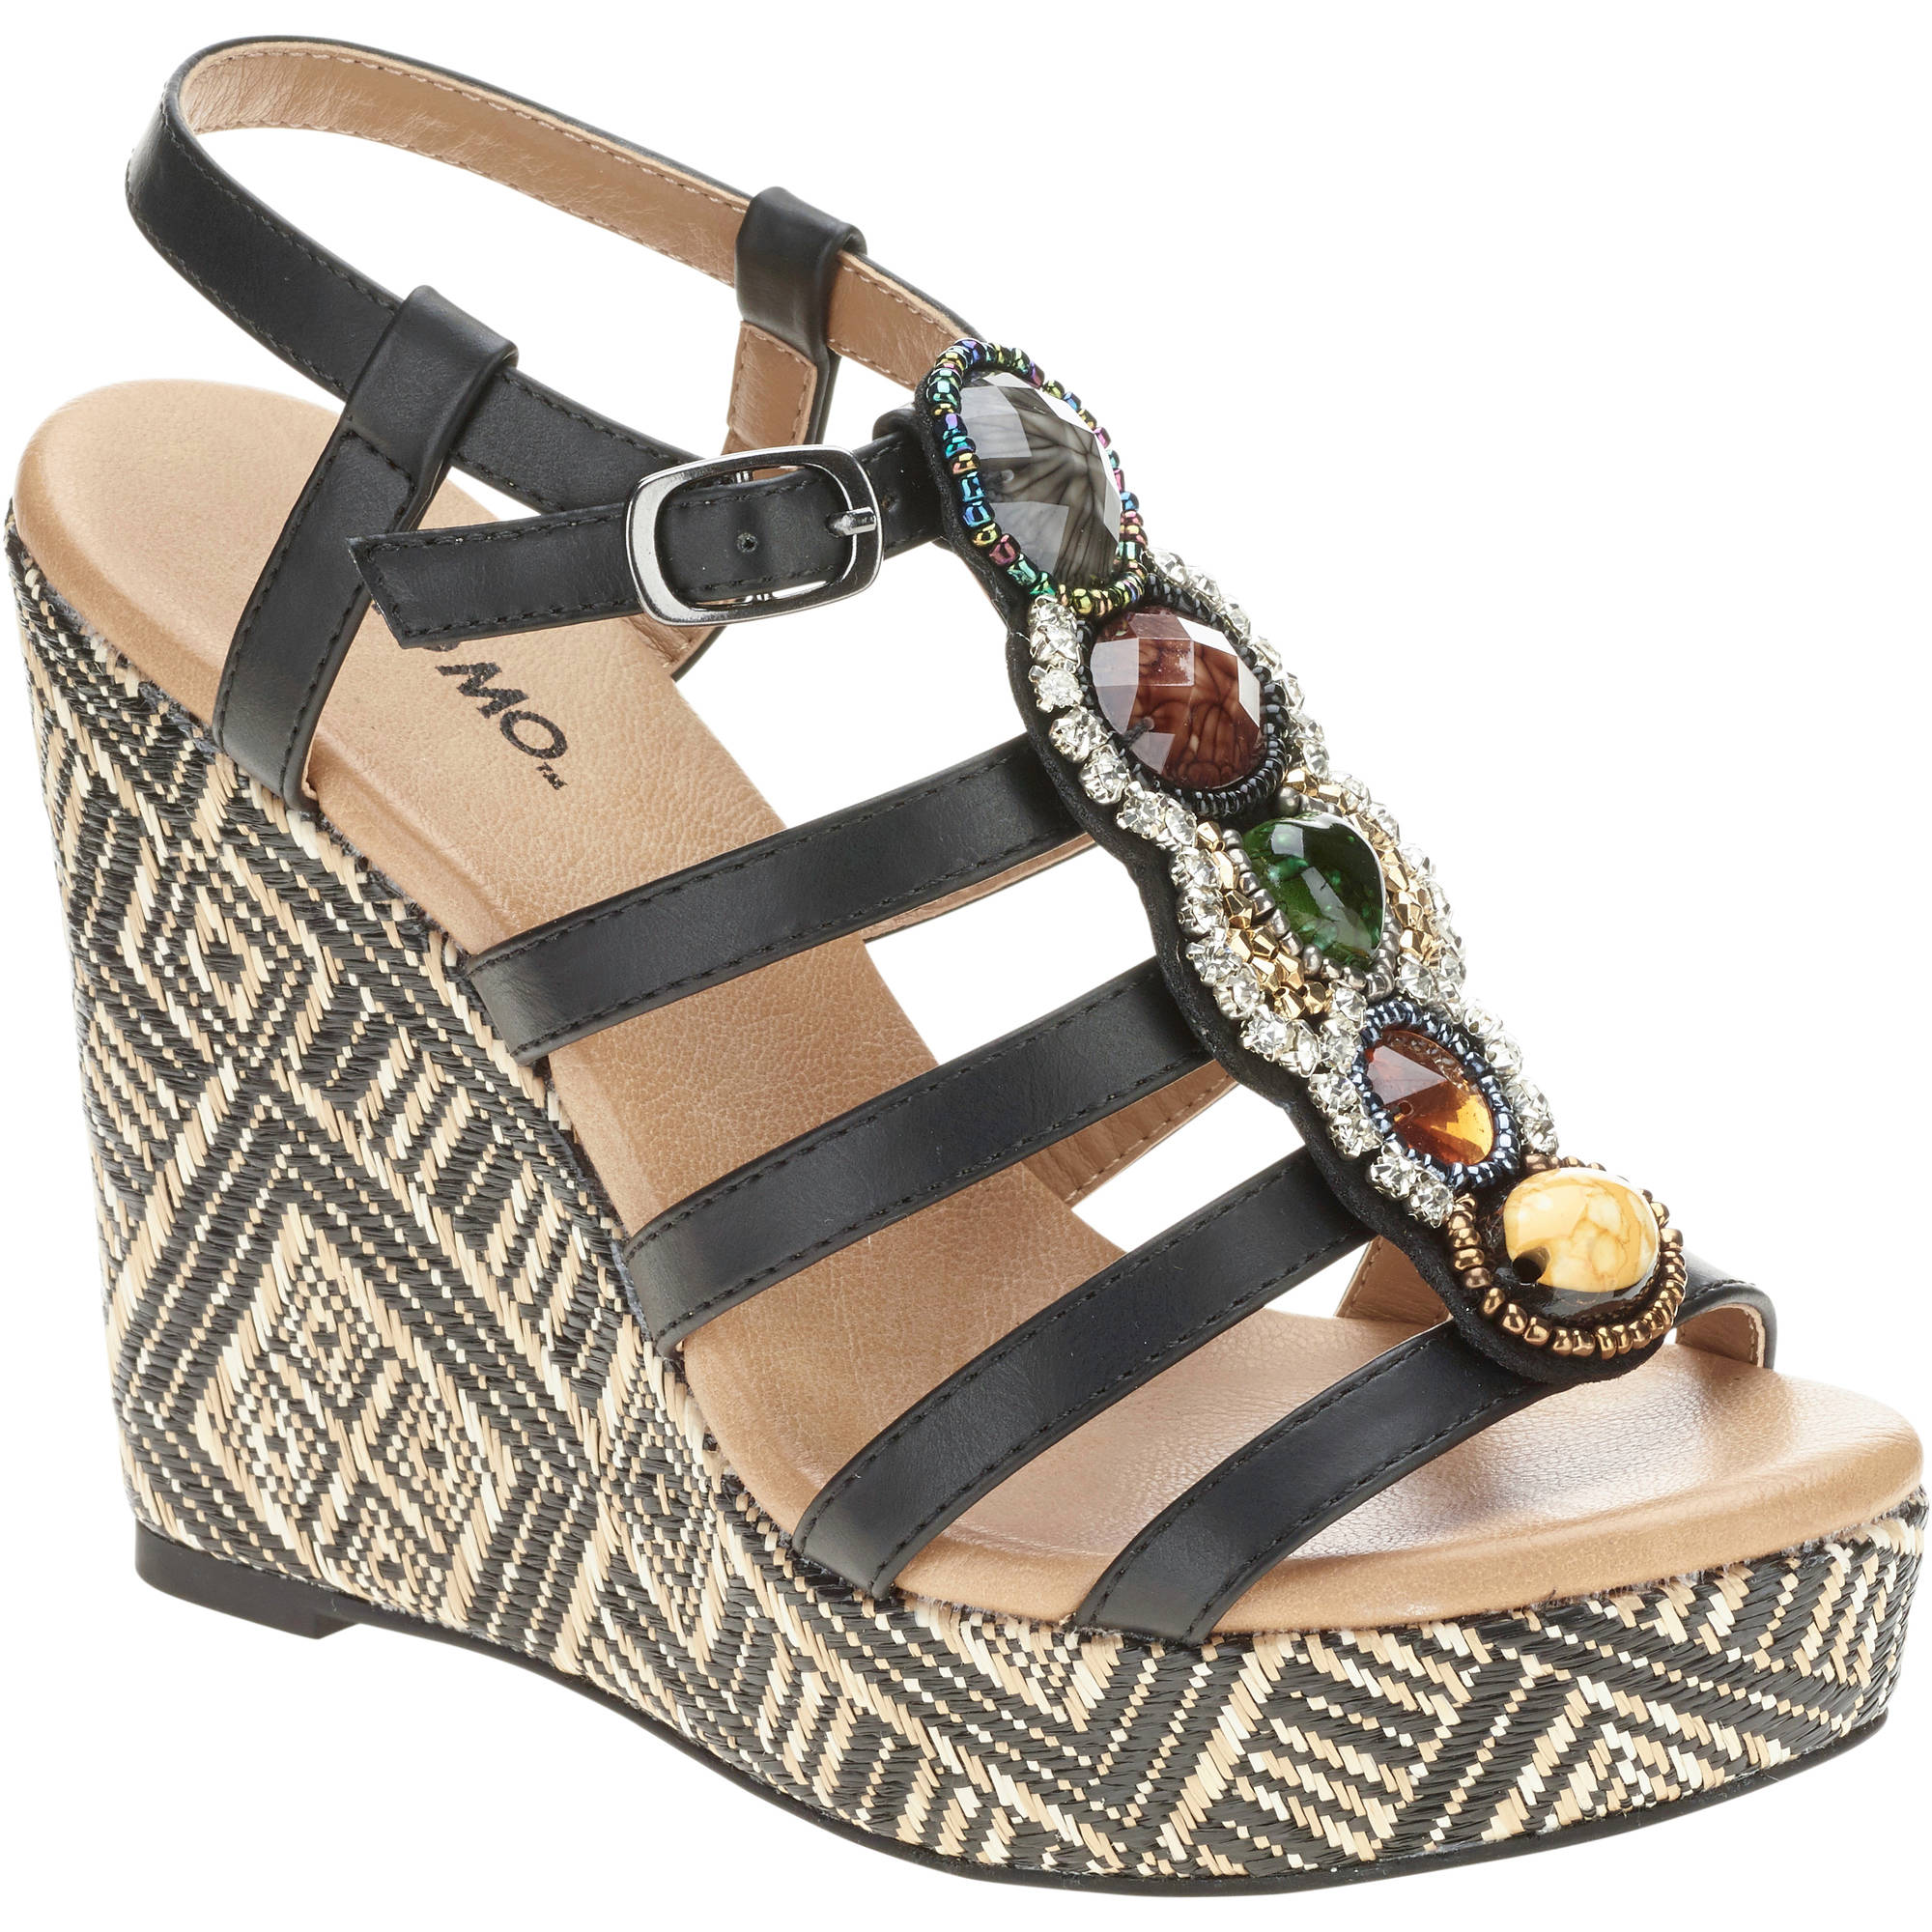 Mo Mo Women's Cabana Jeweled Wrapped Wedge Sandal